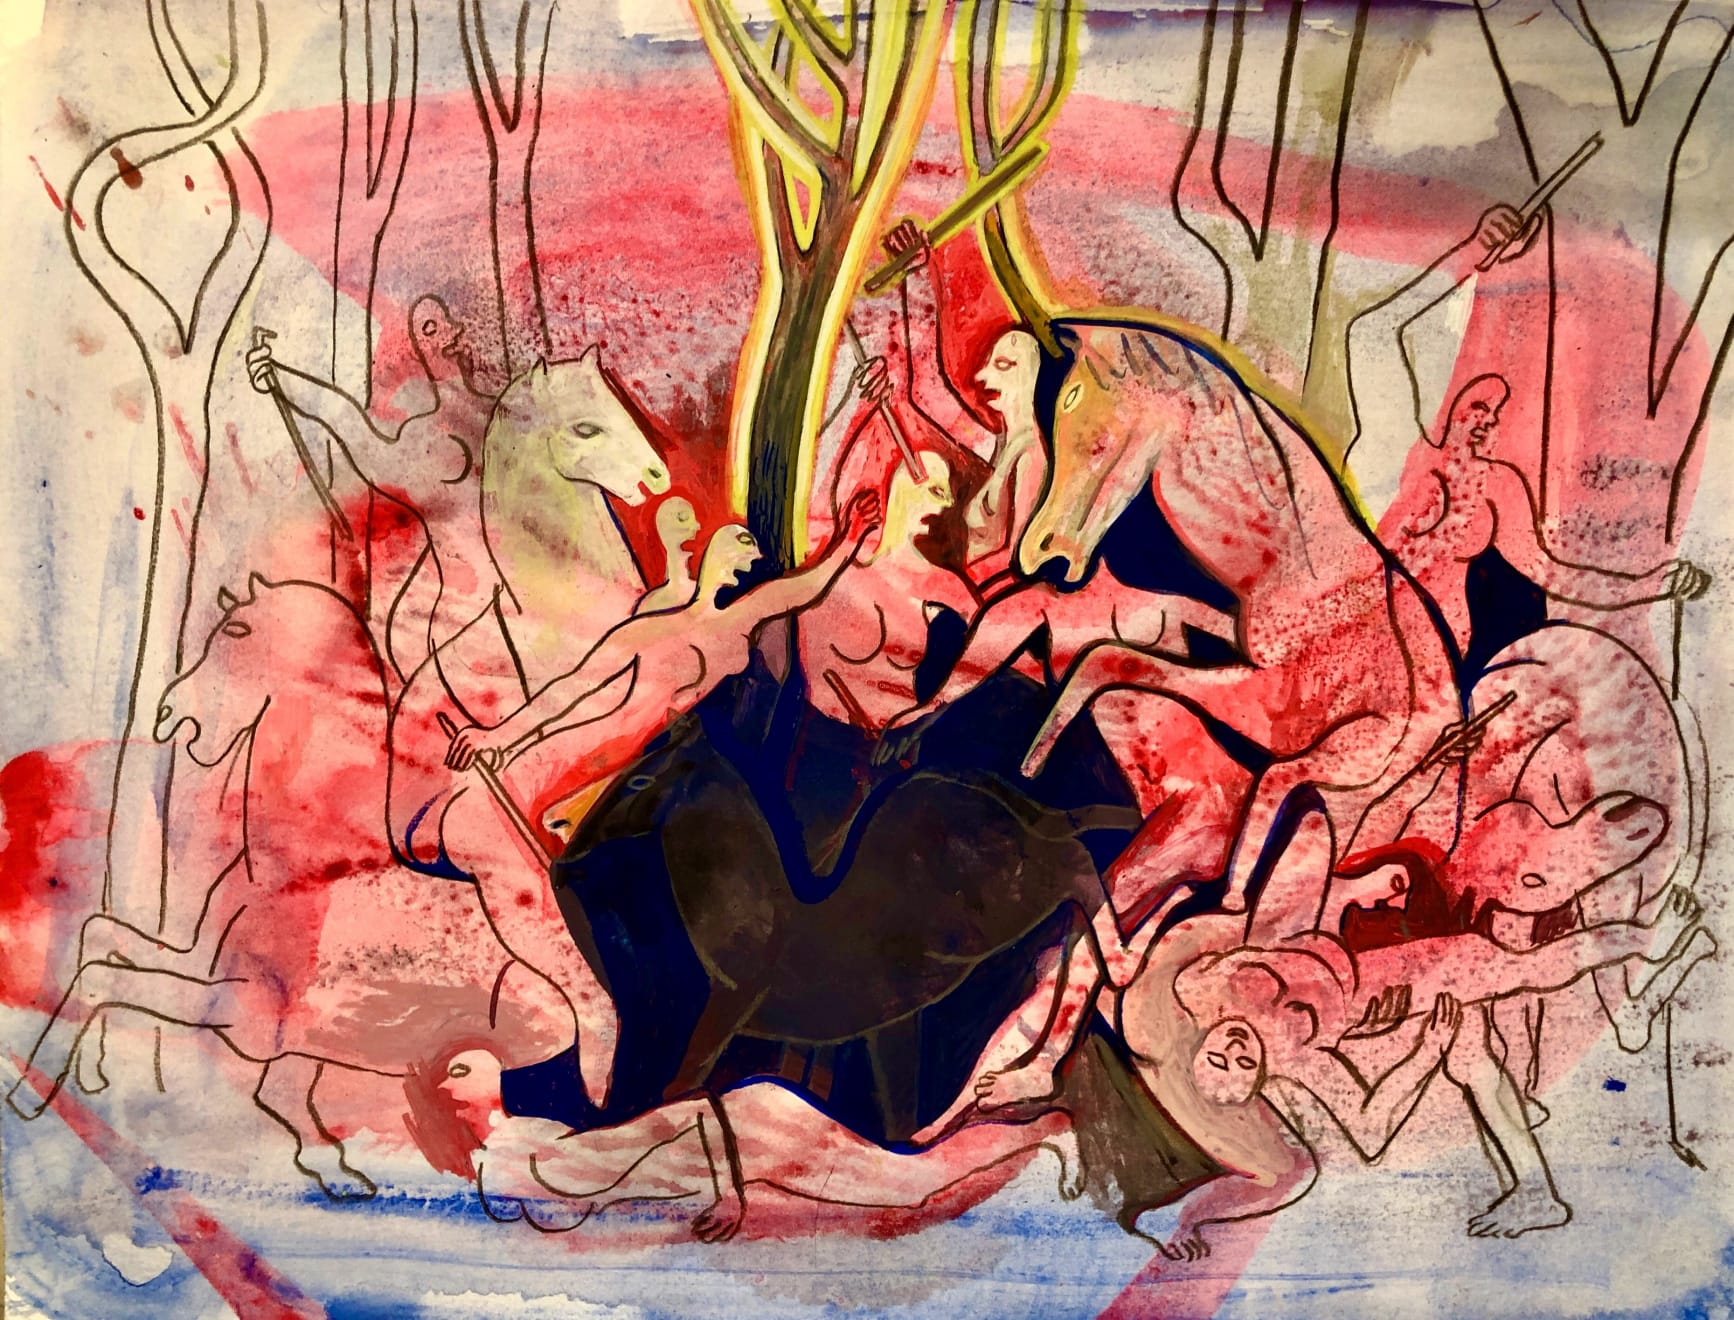 Jennifer Coates, Battle of the Amazons, 2020 gouache and colored pencil on paper, 9 x 12 in